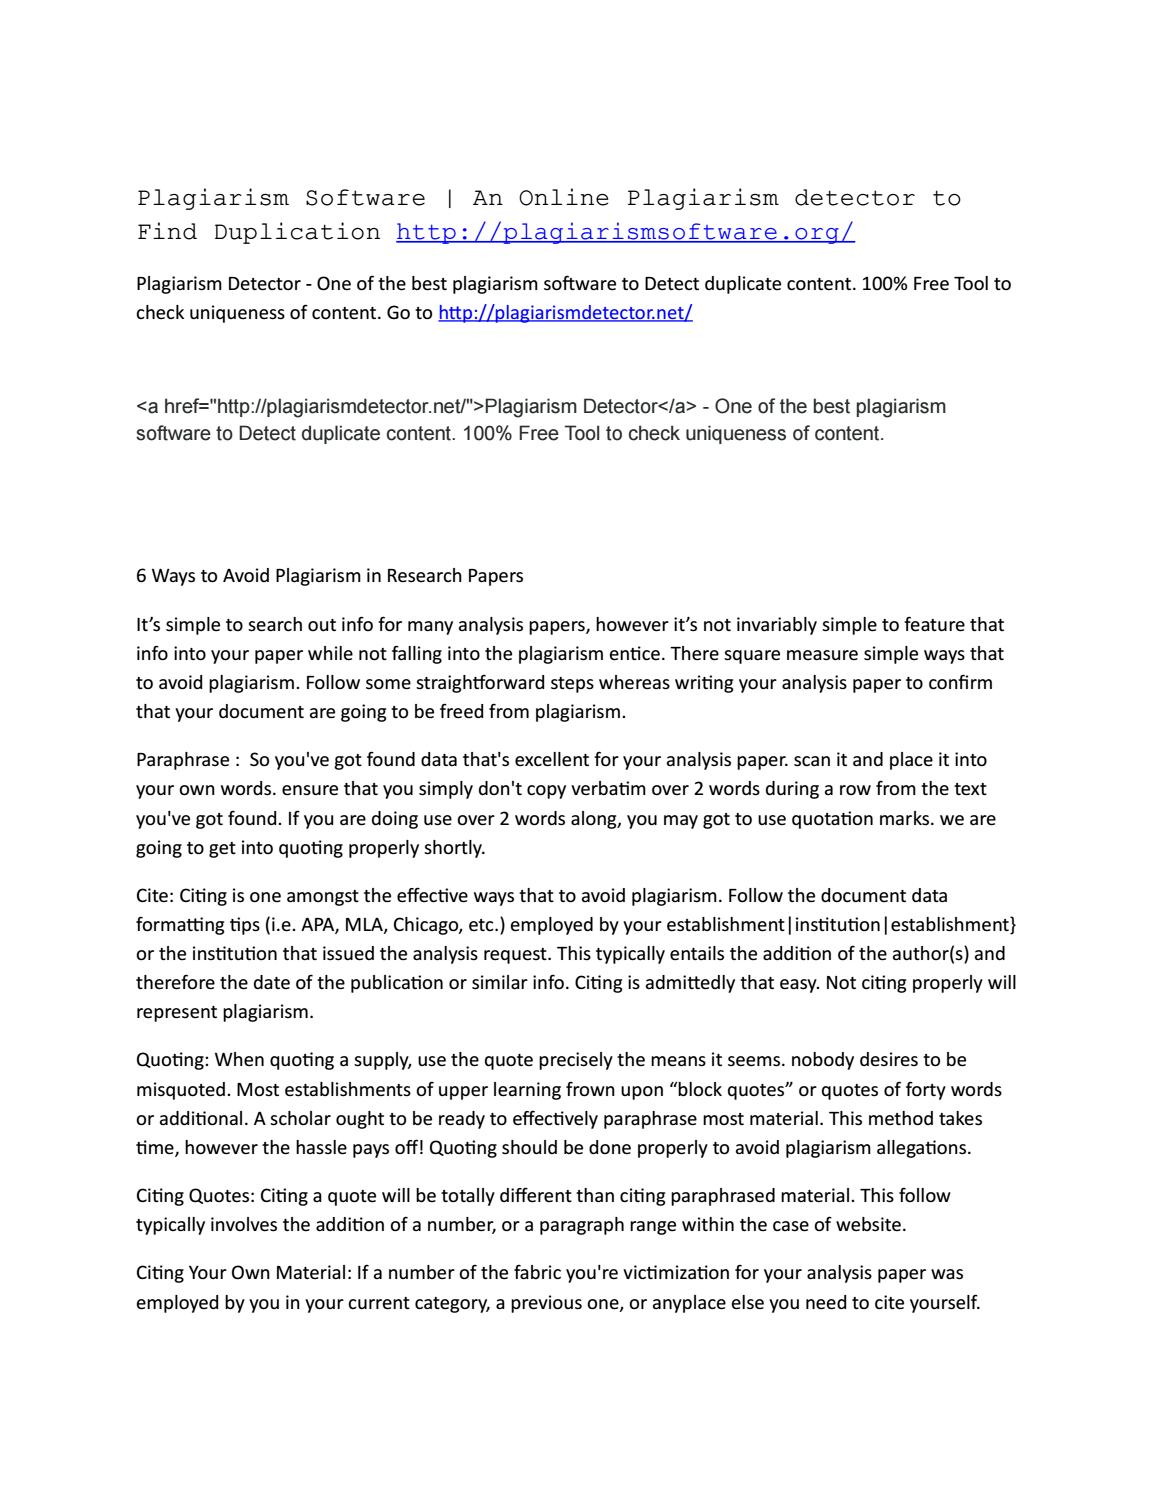 021 Page 1 Check Plagiarism Of Research Paper Online Exceptional Free How To A Checker For Papers Full